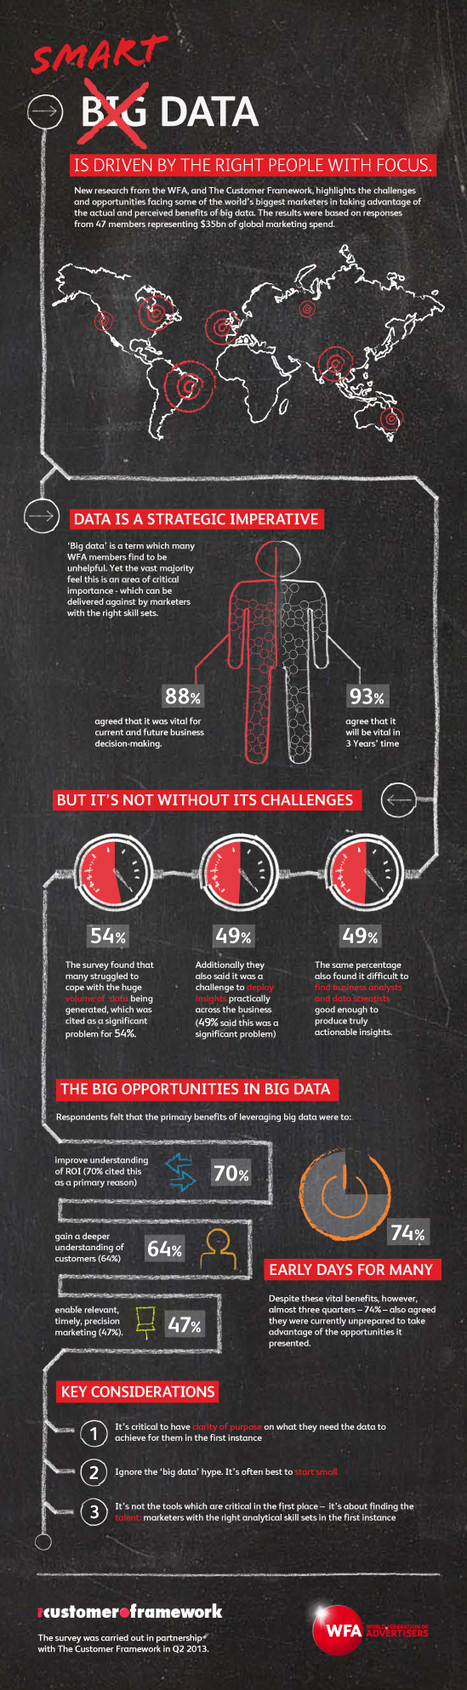 INFOGRAPHIC: Smart Data Is Driven By The Right People   Development Market   Scoop.it